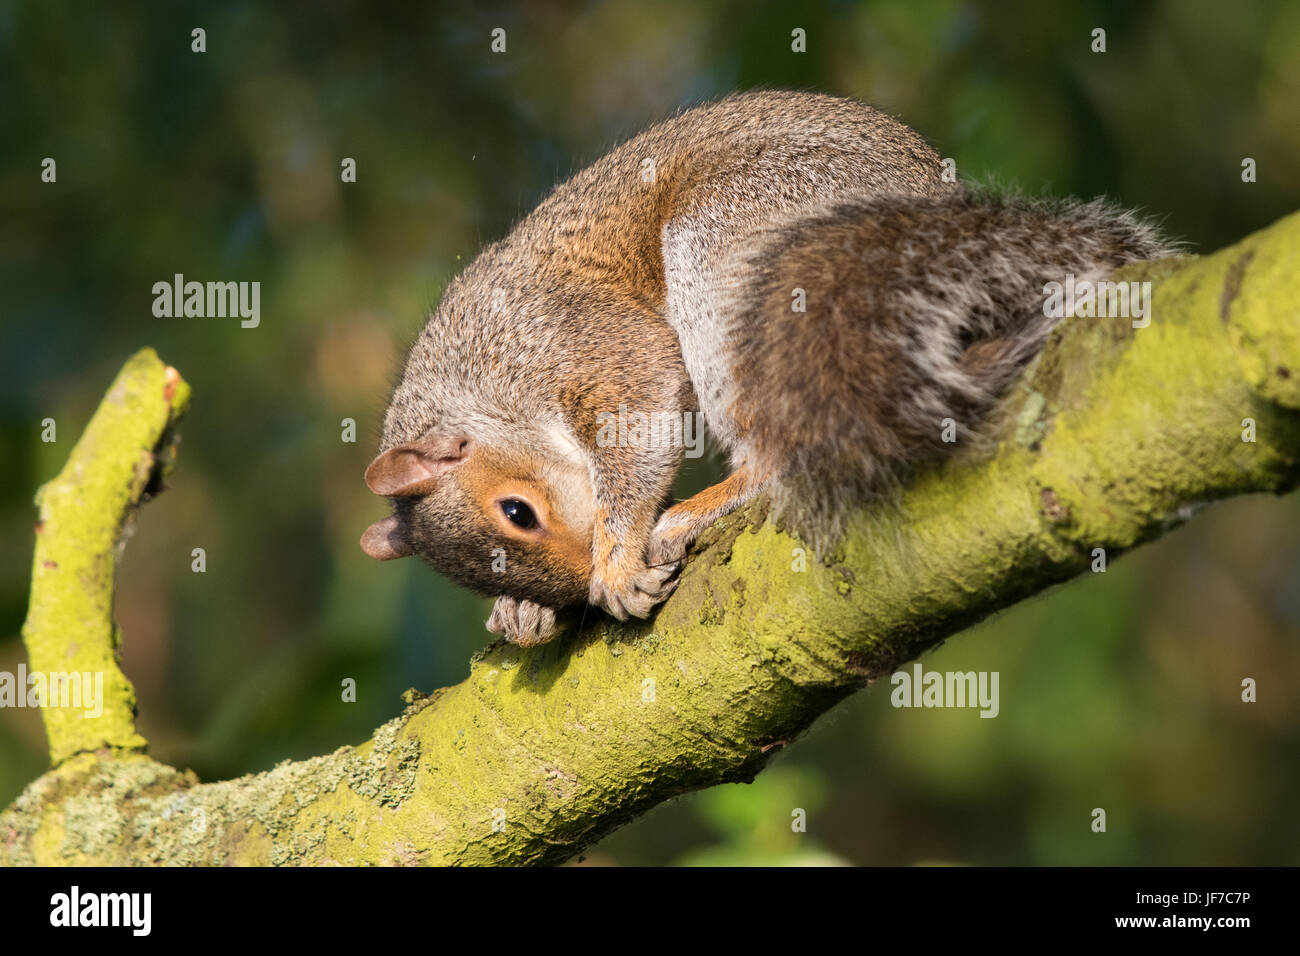 Eastern Grey Squirrel (Sciurus carolinensis) using a branch to scratch its nose - Stock Image